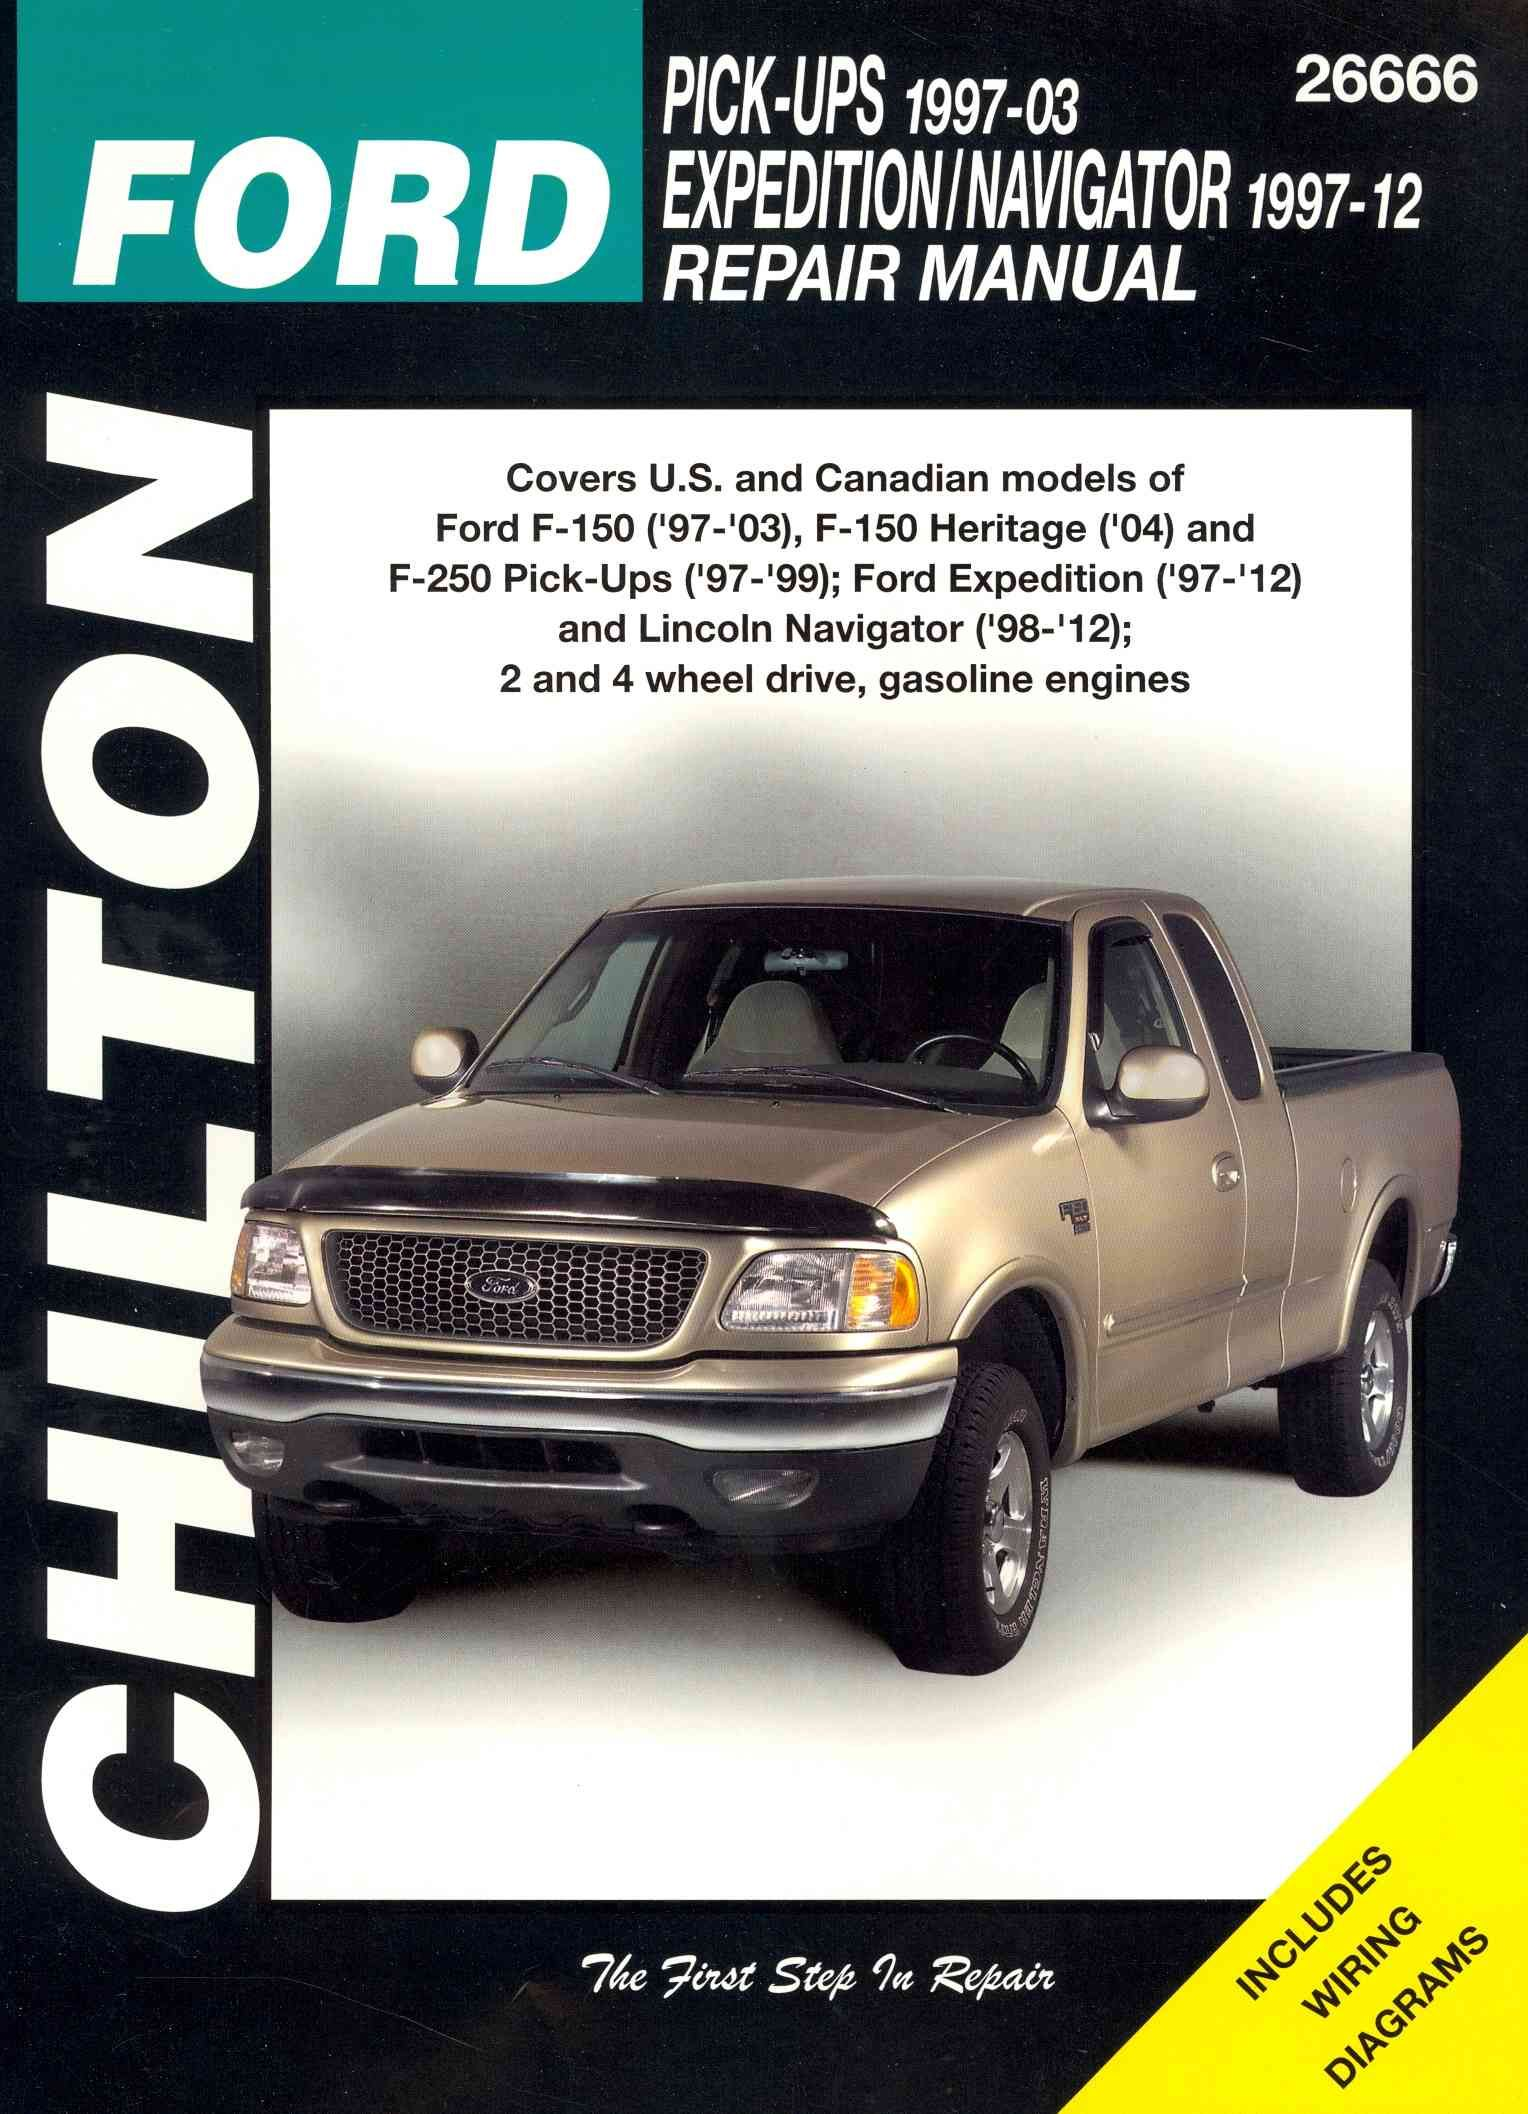 Chiltons ford pick ups 1997 03 expedition navigator 1997 12 chiltons ford pick ups expedition navigator repair manual fandeluxe Image collections